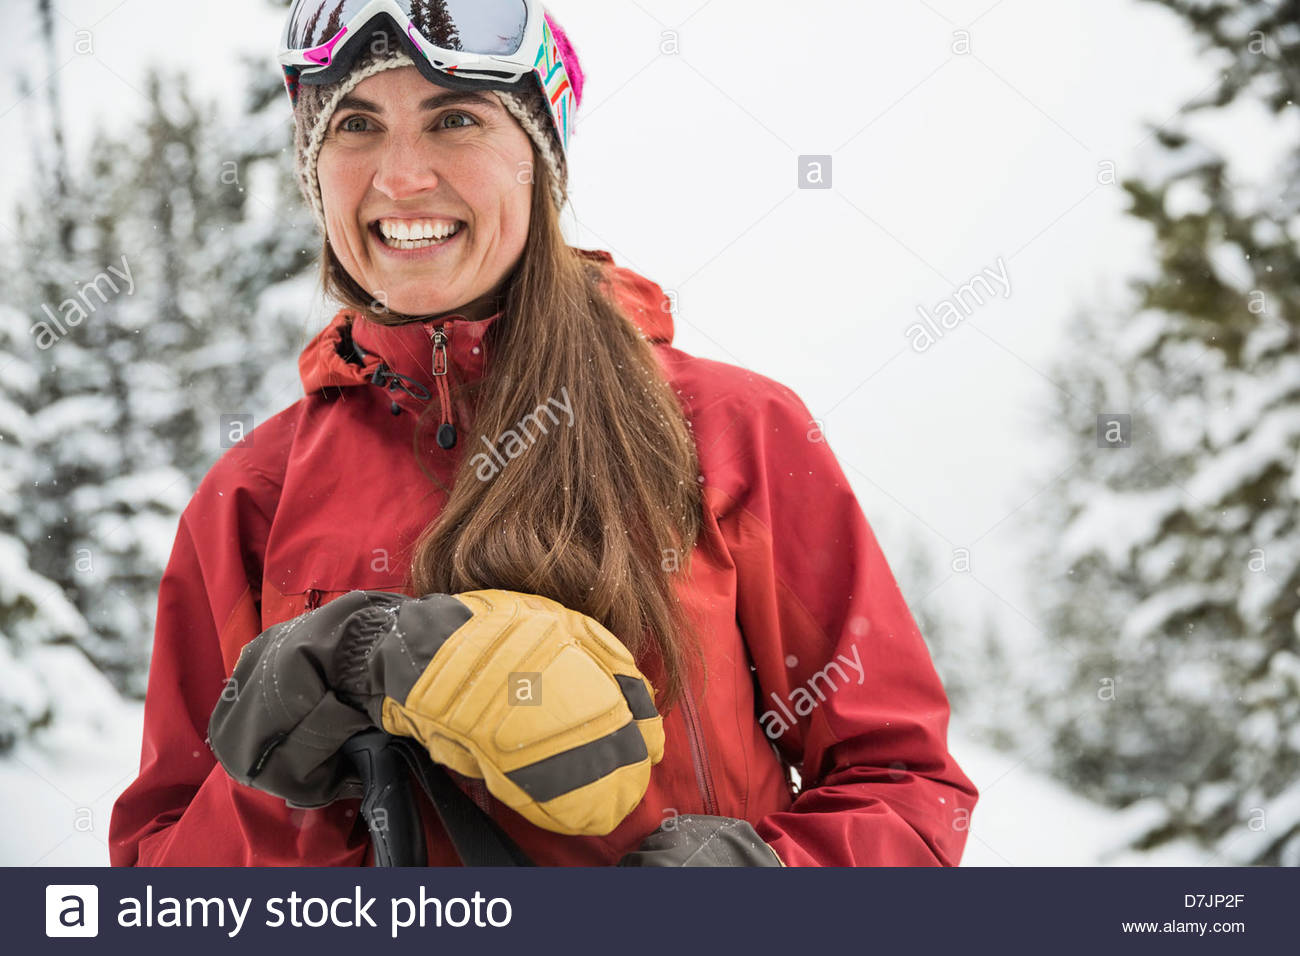 Smiling woman backcountry skiing in mountains - Stock Image